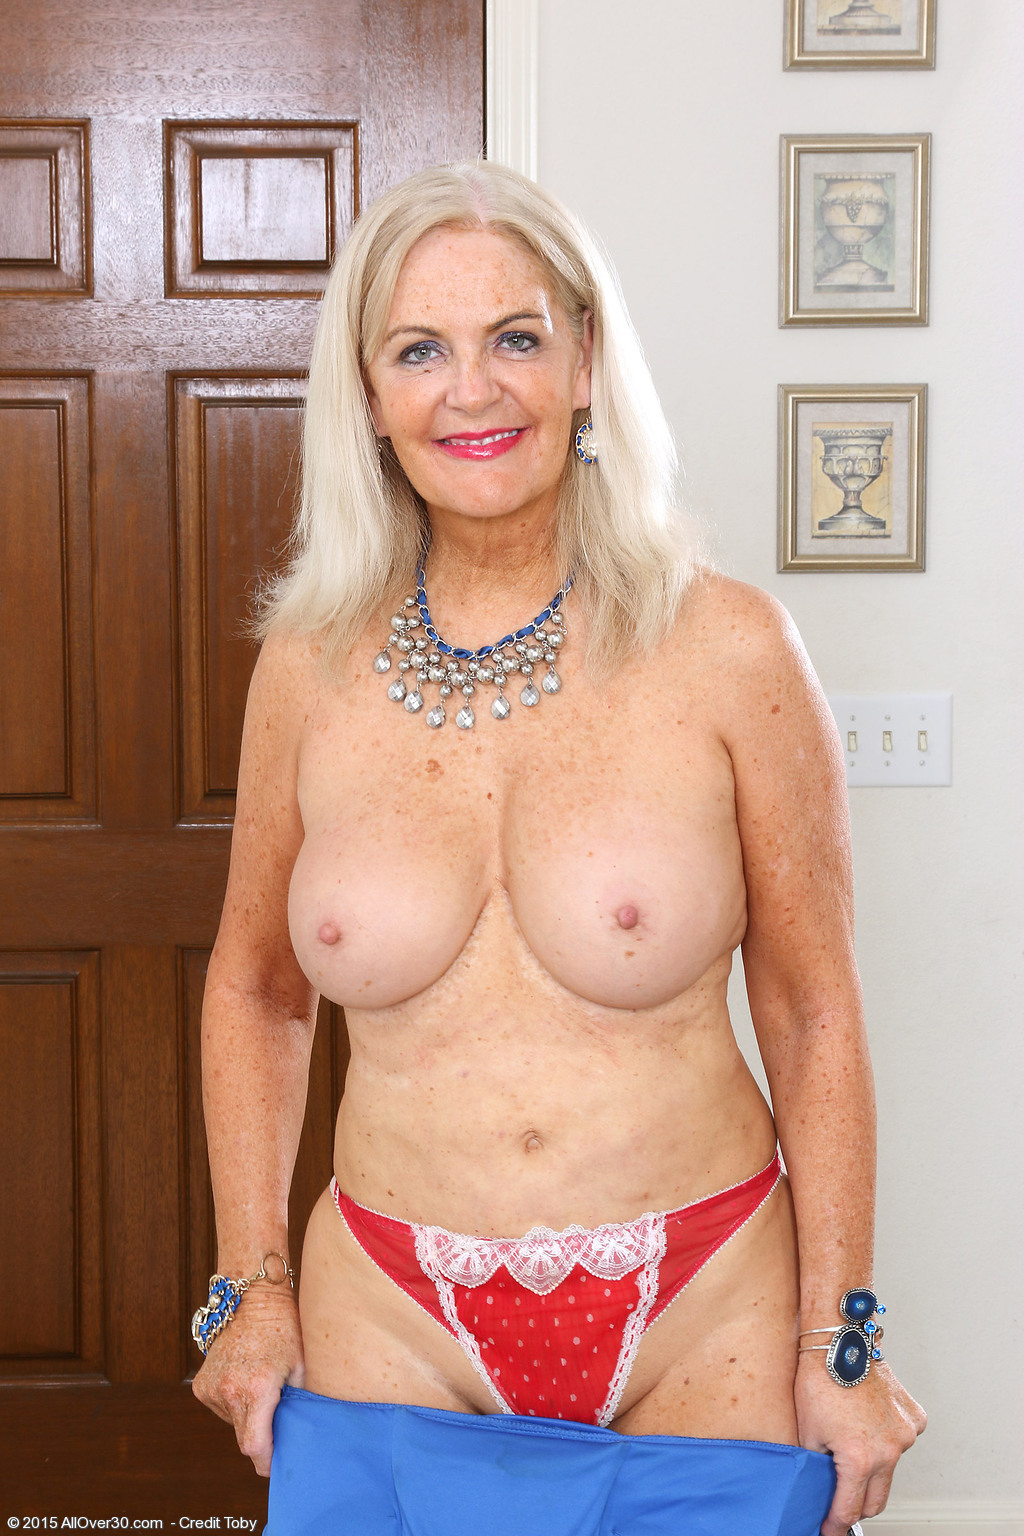 58 year old granny milf senior citizen fucks like she 18 p2 4